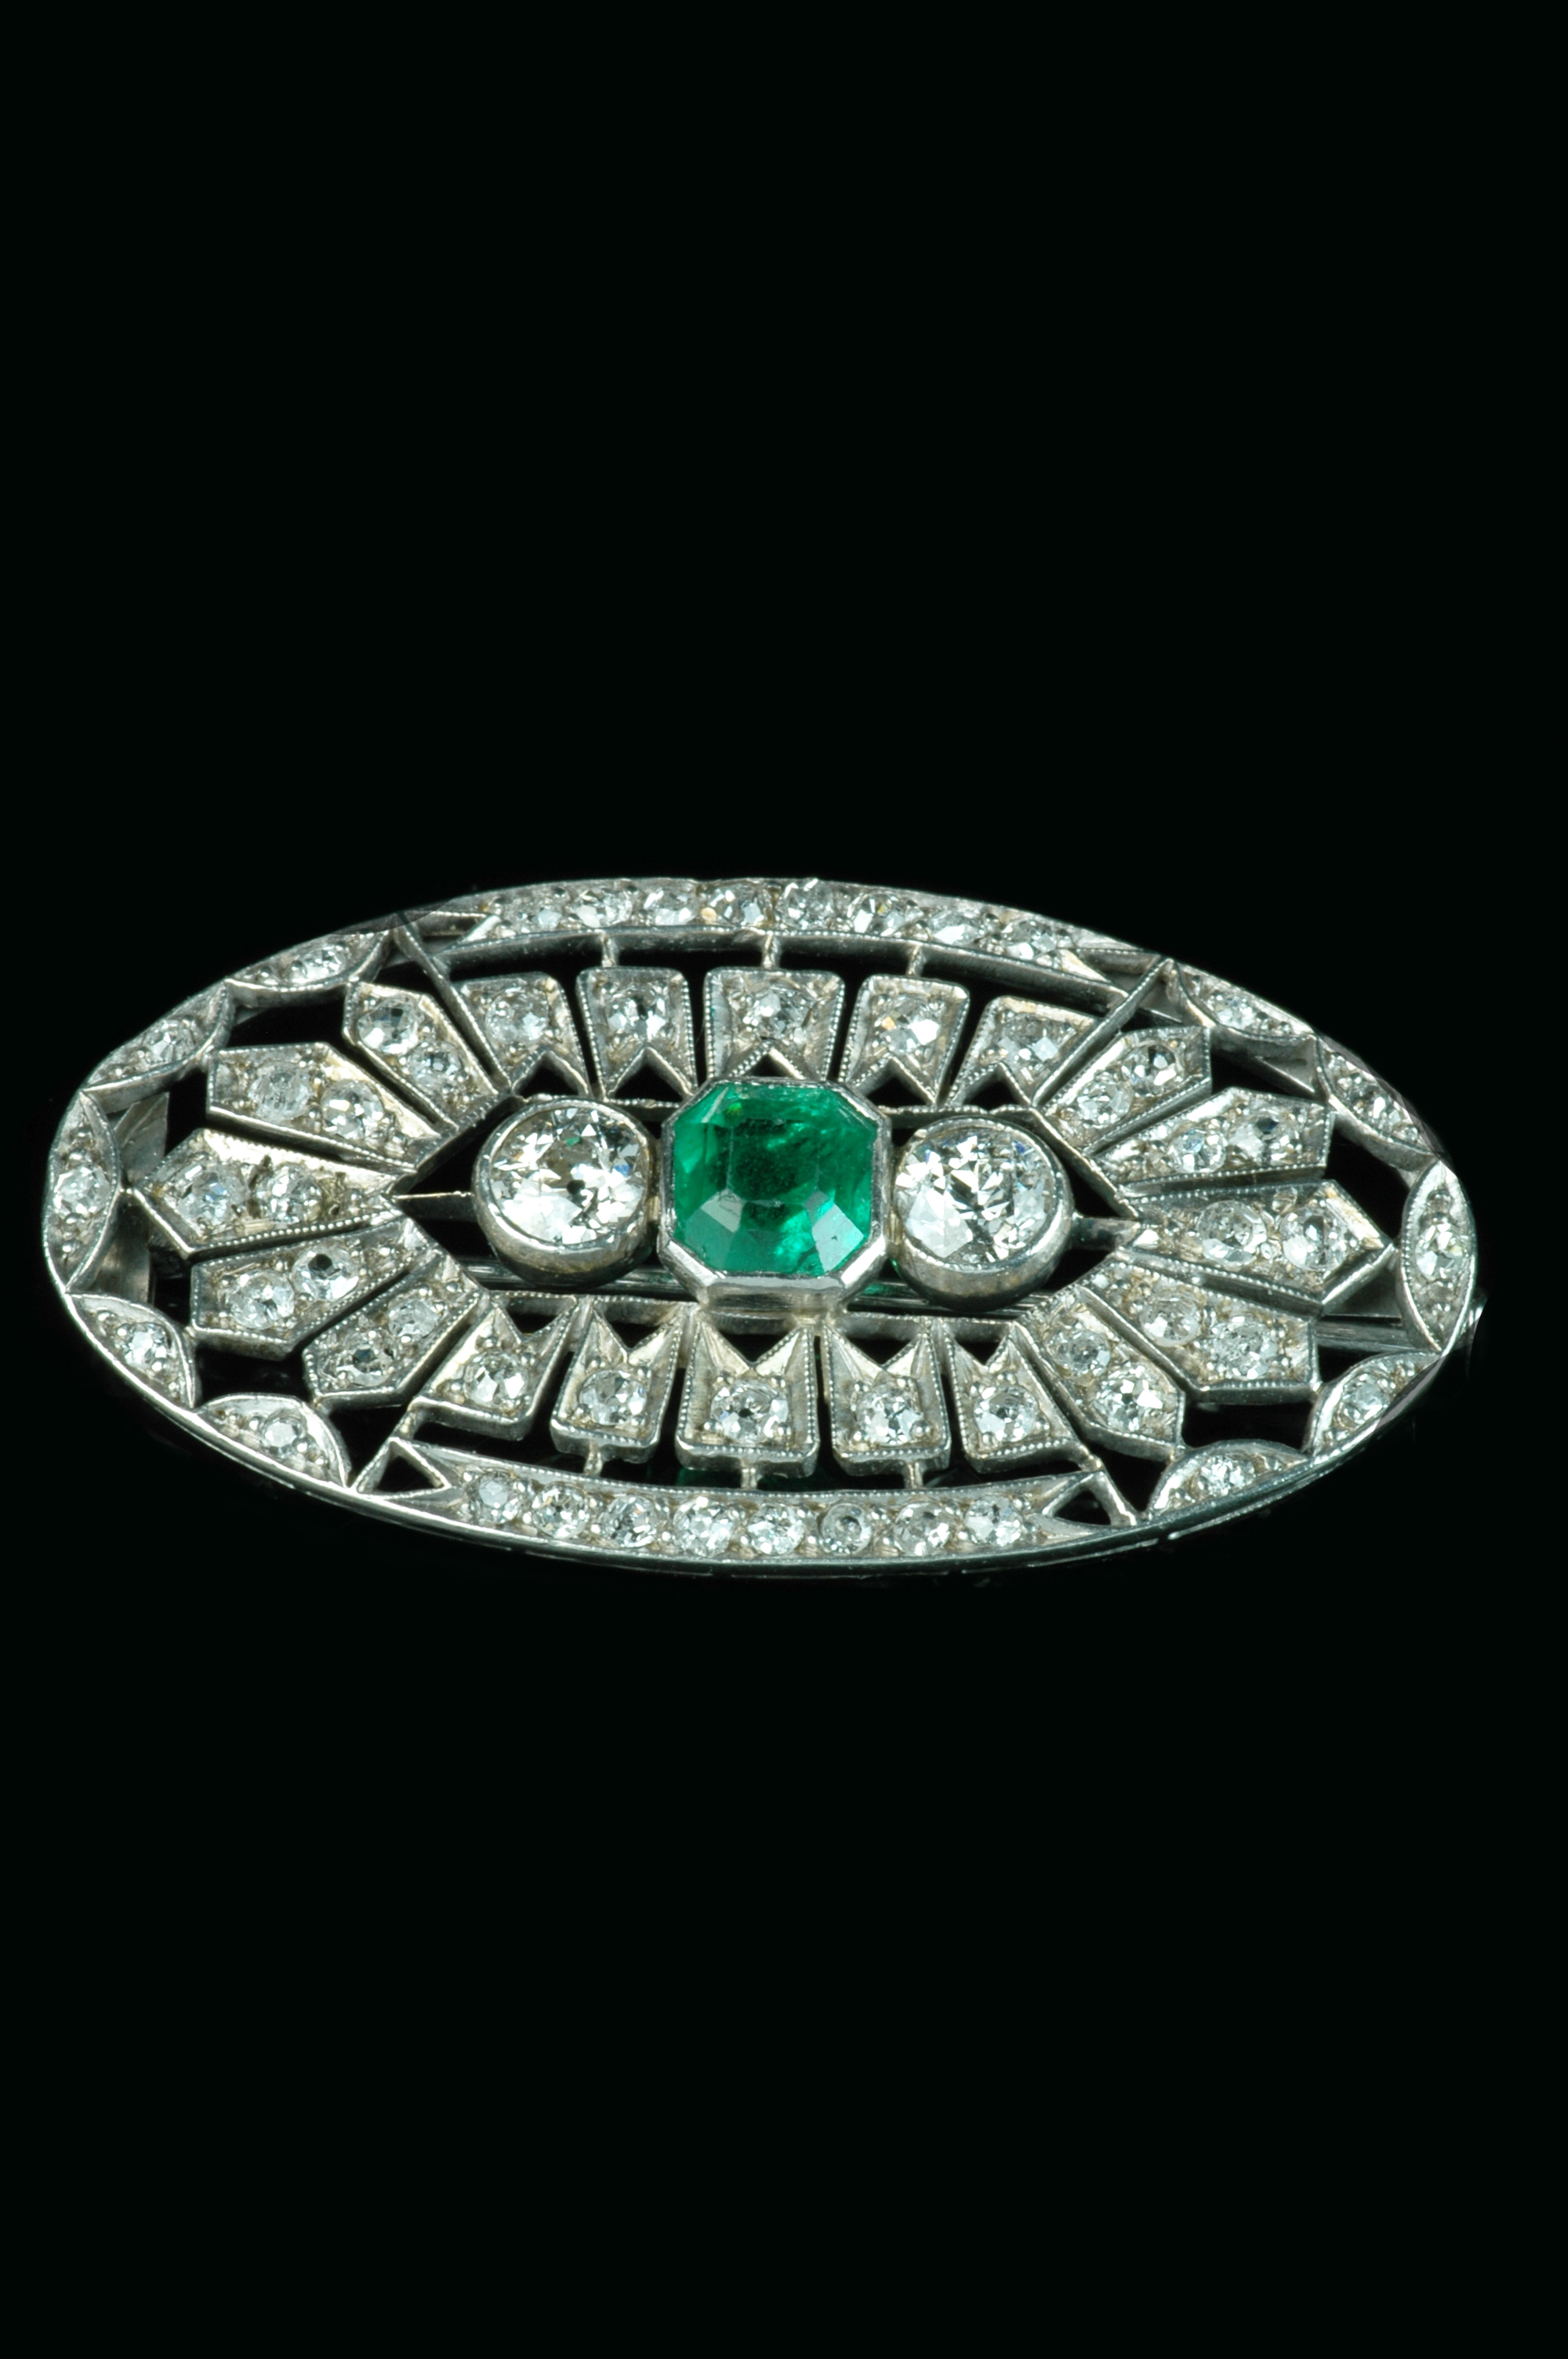 emerald-diamond-brooch1